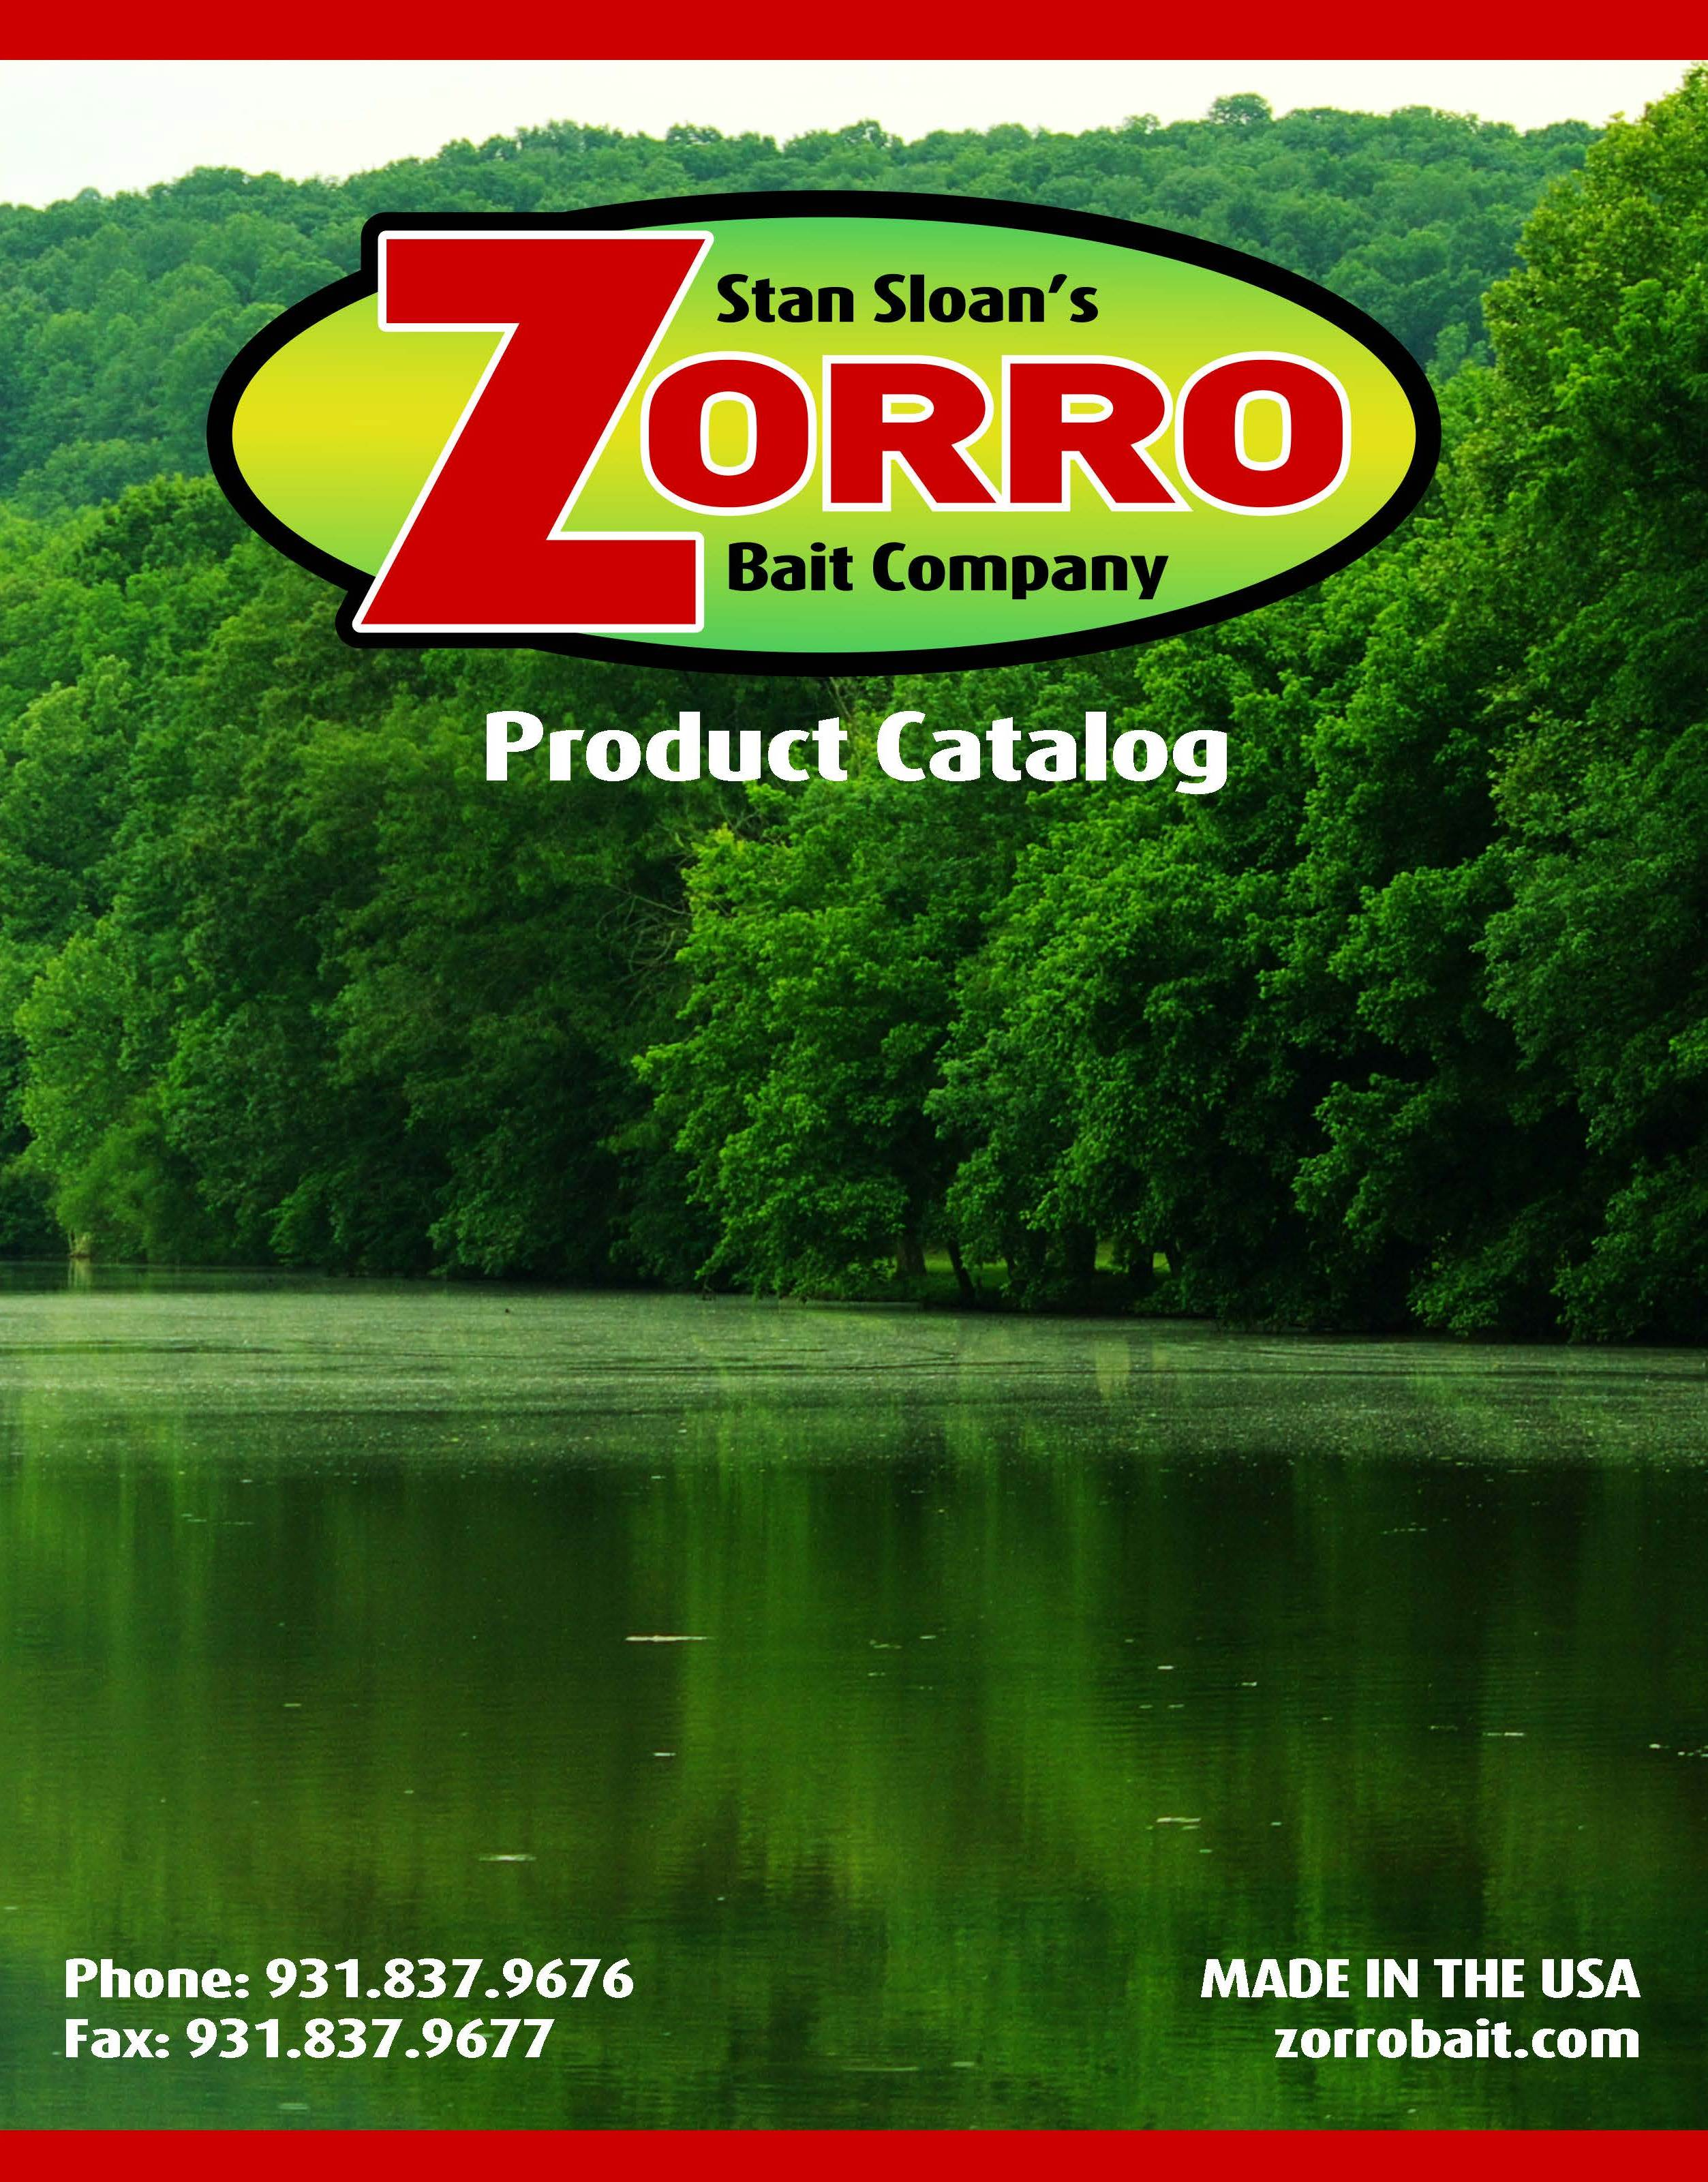 Zorro Bait Catalog<div style='clear:both;width:100%;height:0px;'></div><span class='cat'>Logos and Printwork</span>